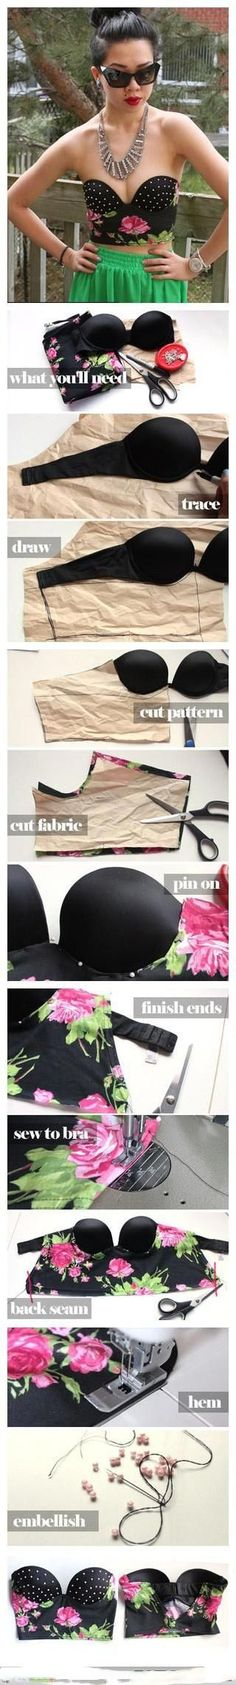 17 Interesting DIY Fashion Ideas- I would need to add more fabric on top of bra but sweet!!  could come in handy for Halloween ideas!: